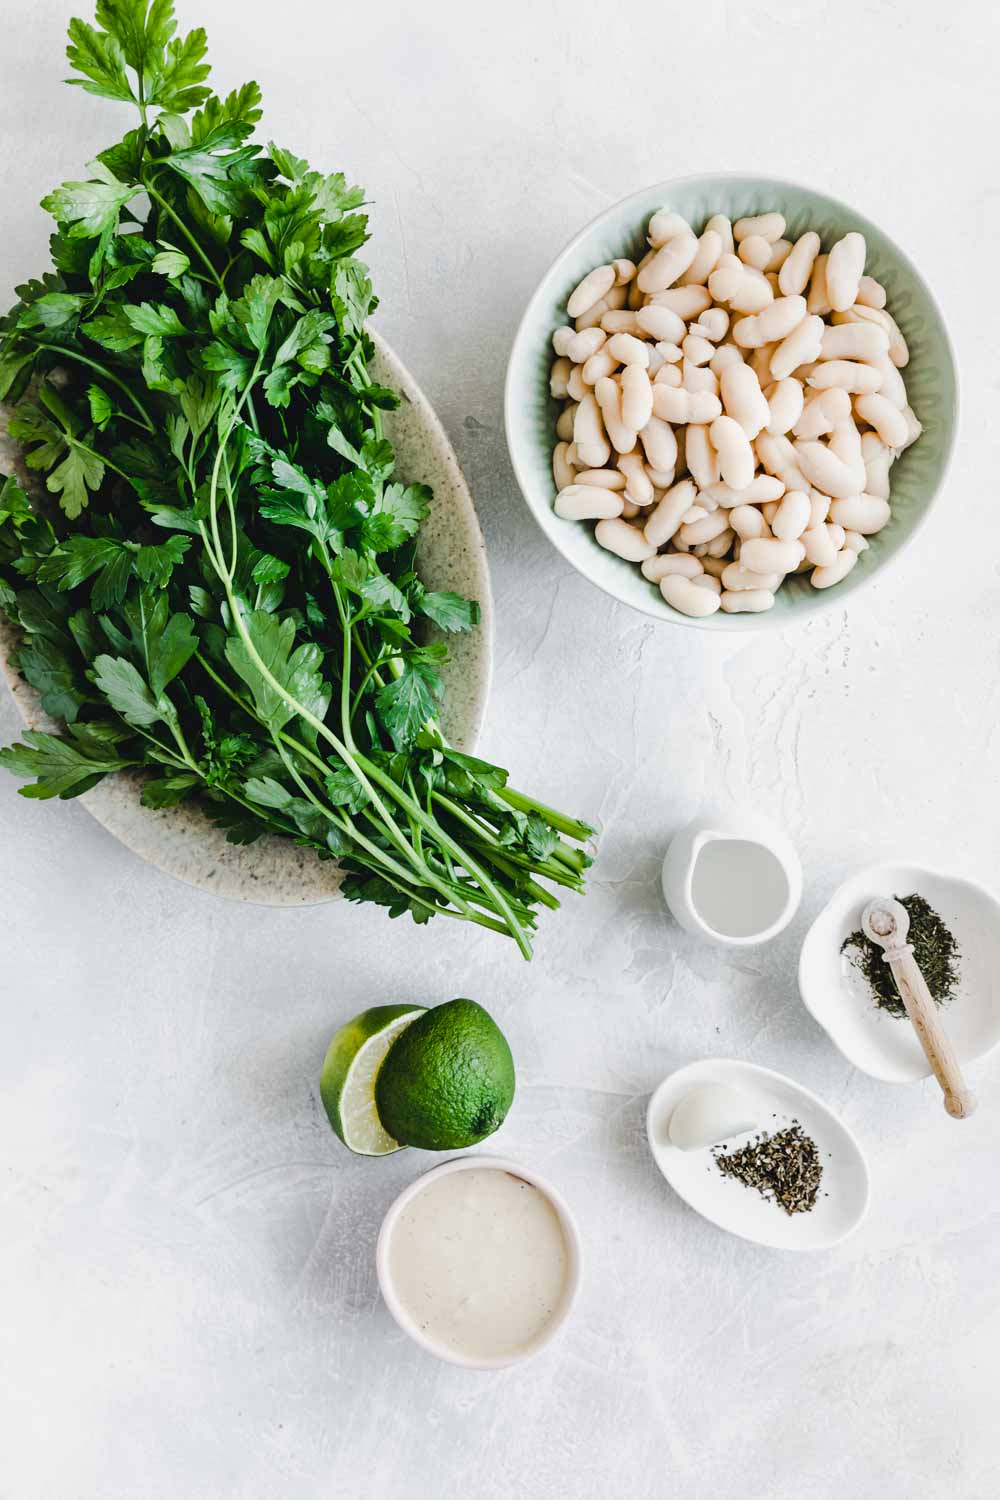 ingredients for white bean dip on a light backdrop